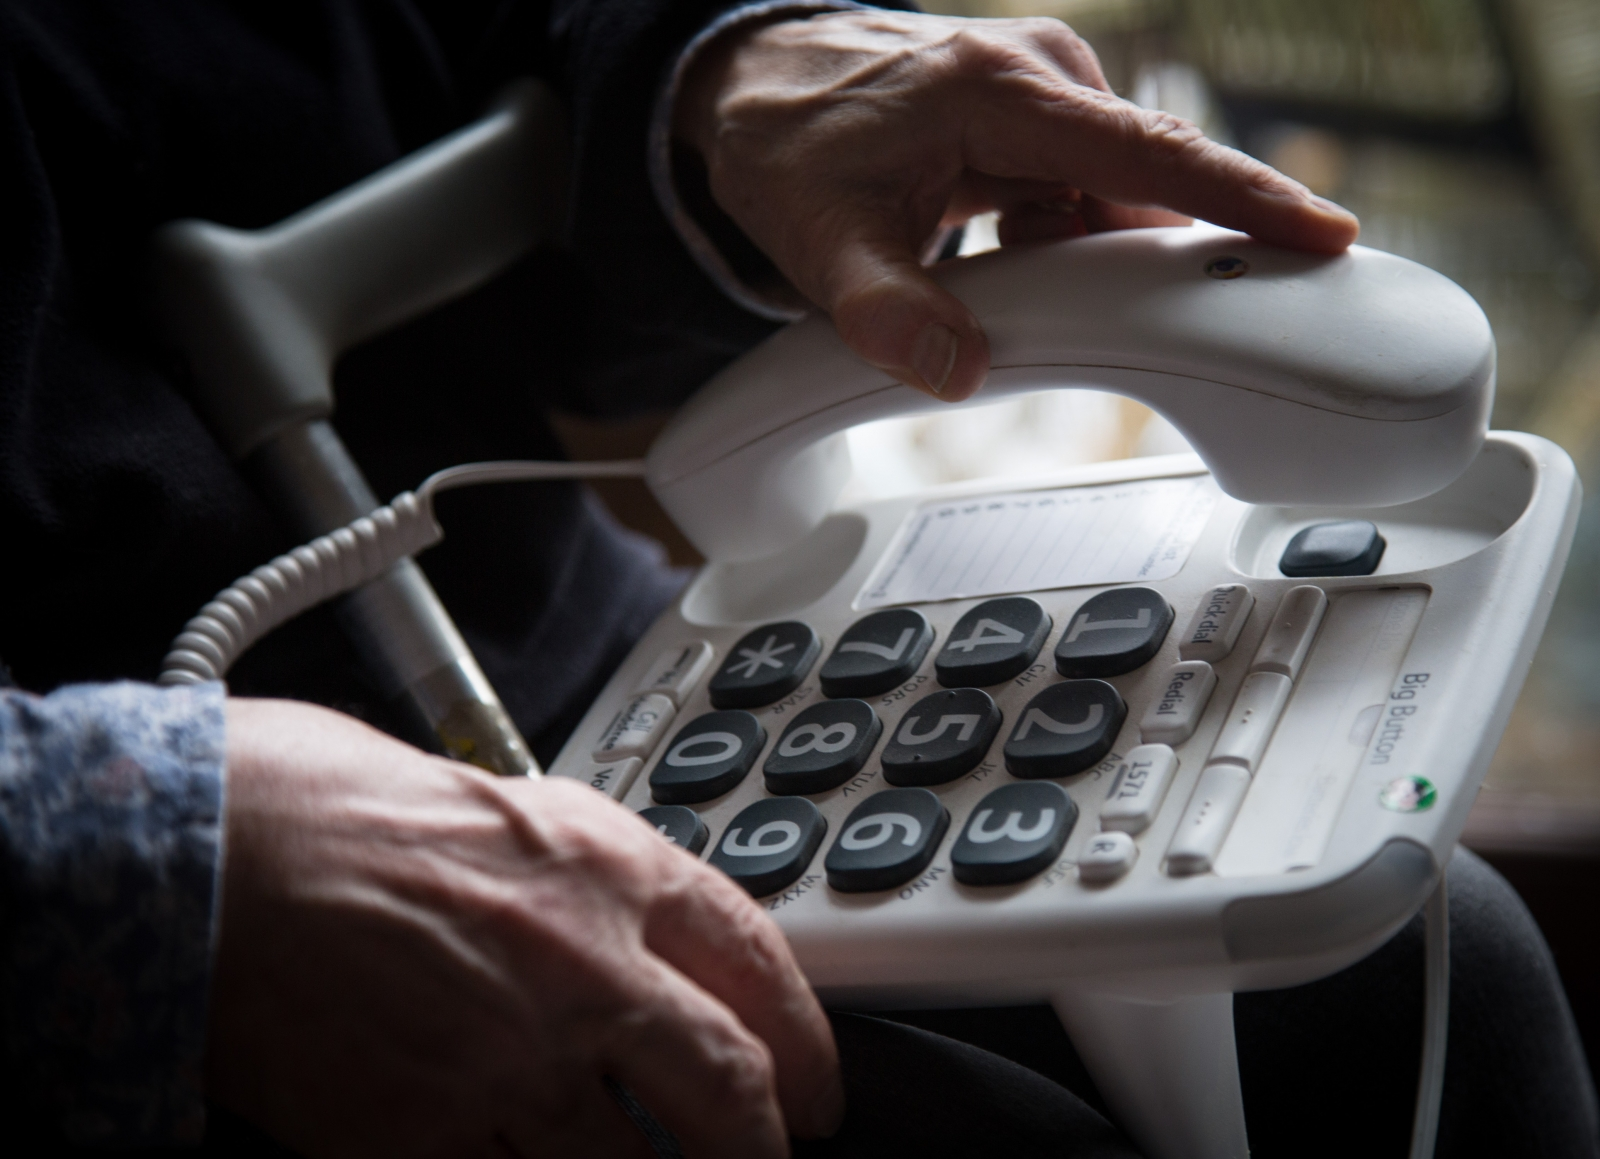 Britain's telecoms giants to be probed by Ofcom over landline pricing